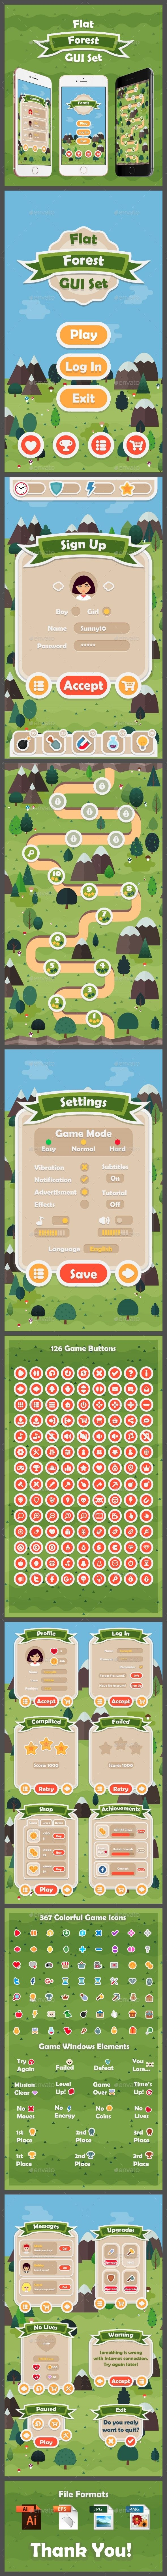 #Flat Forest Game User Interface Set - User Interfaces #Game #Assets